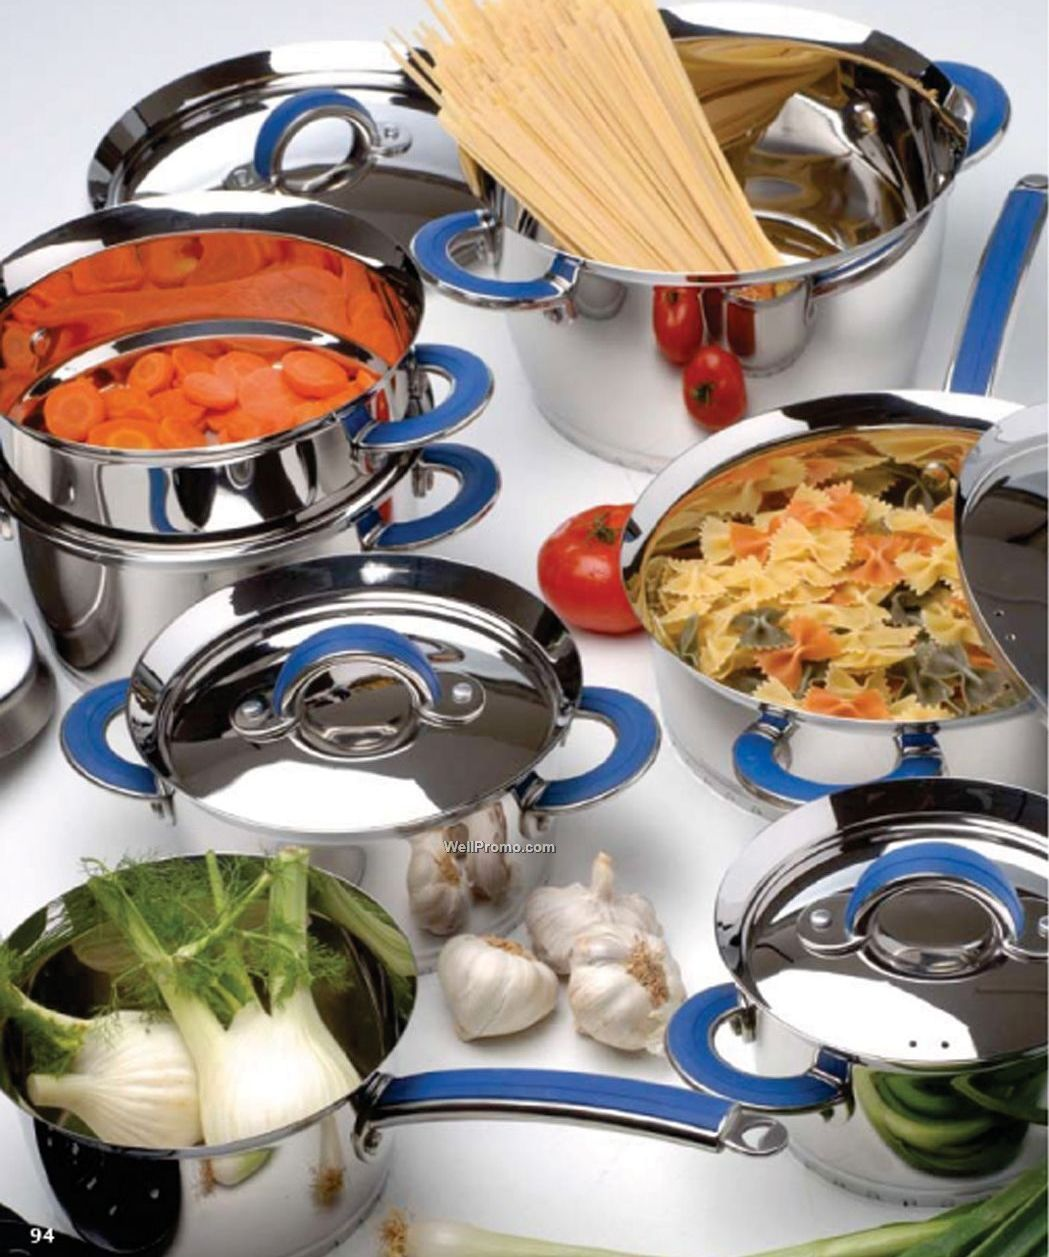 Designo-16-Pieces-Cookware-Set-182469.jpg